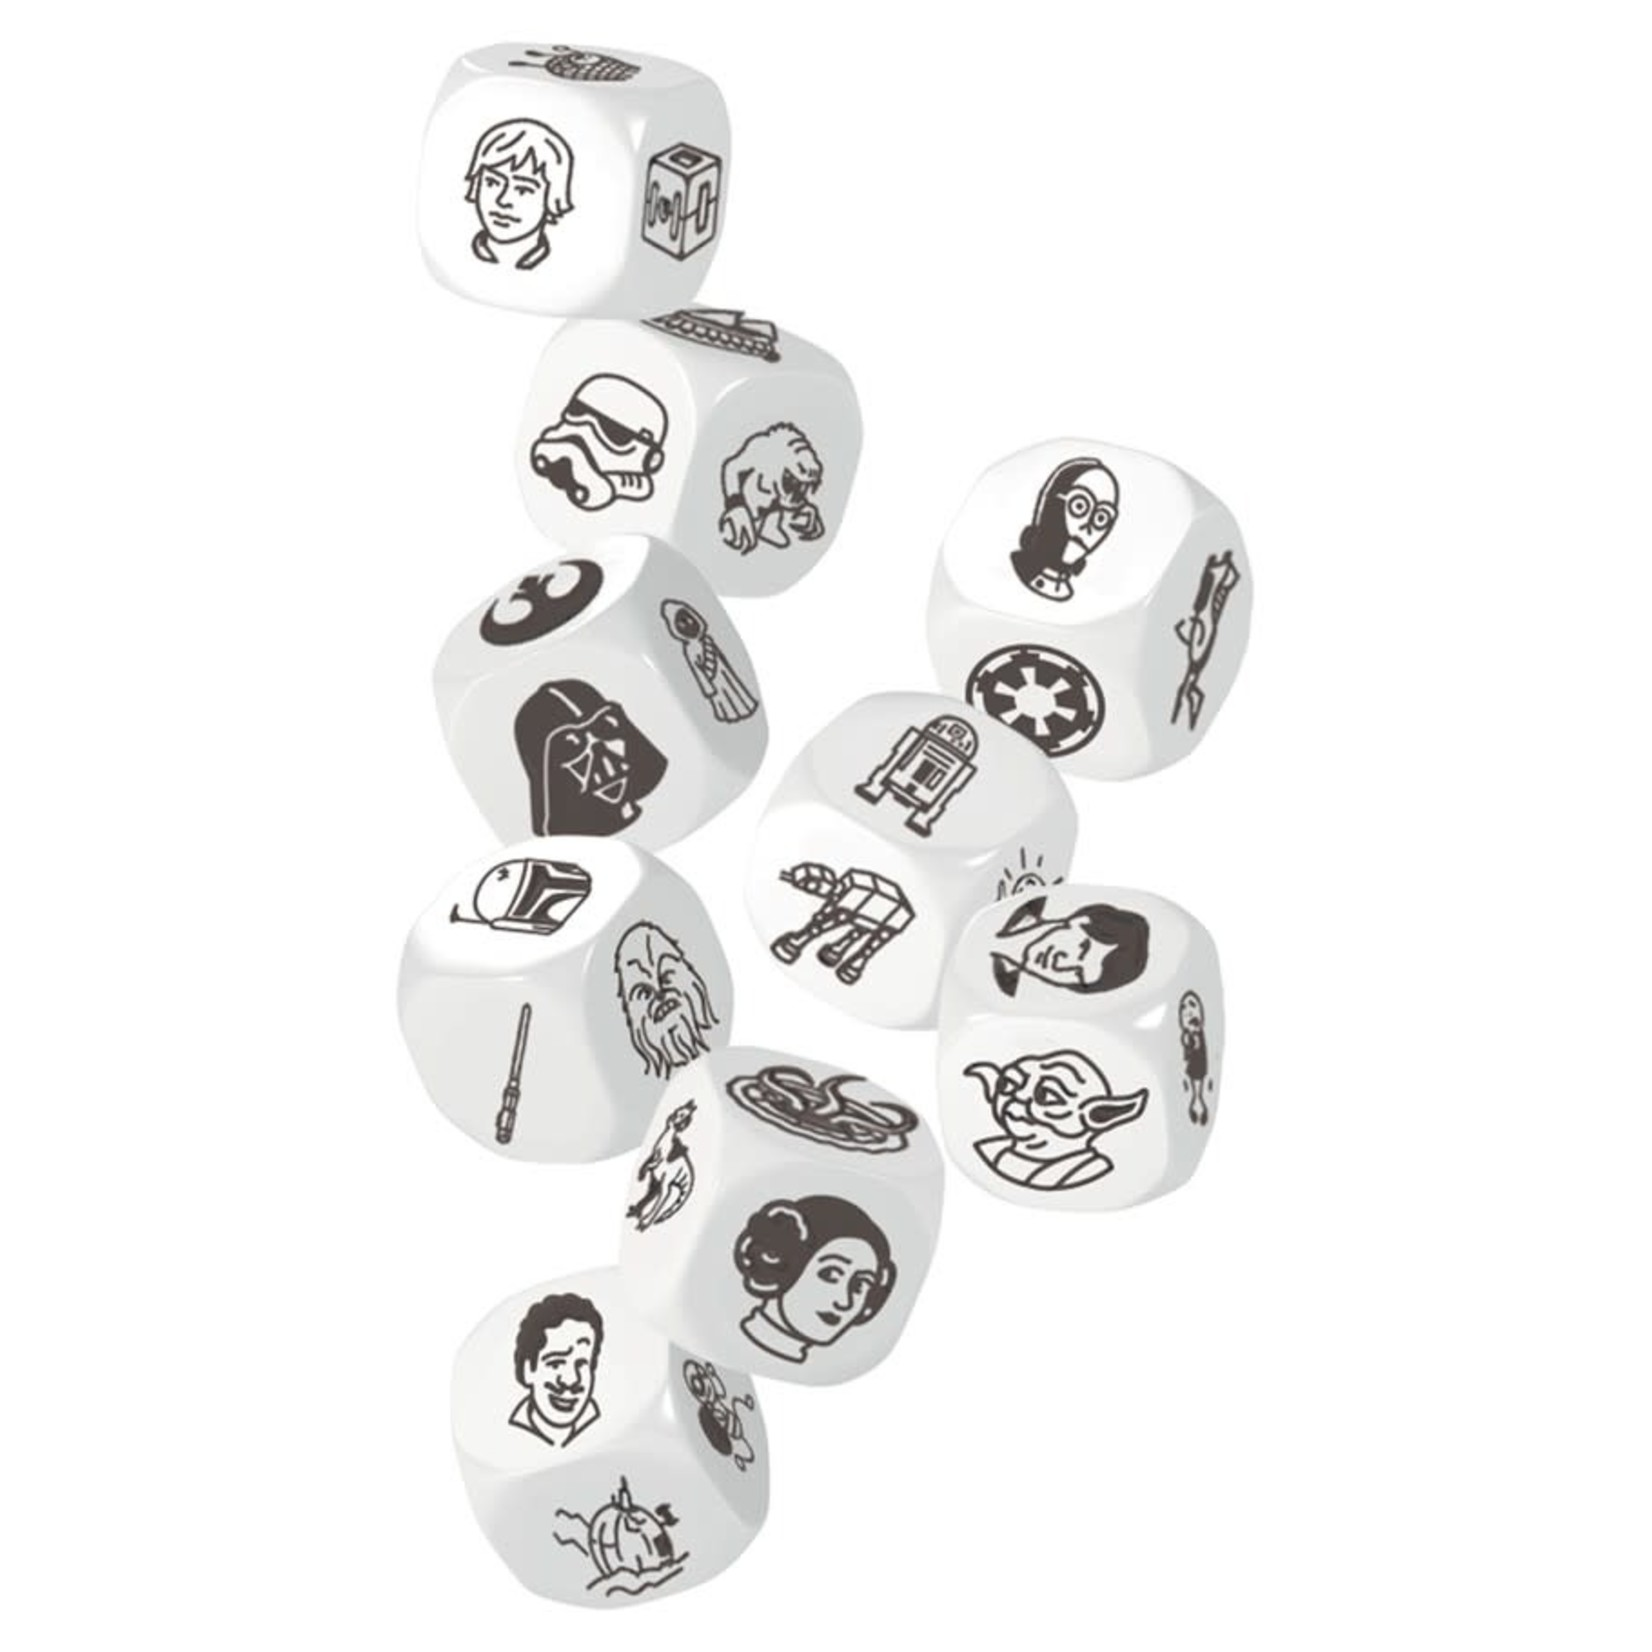 Asmodee Editions Rory's Story Cubes: Star Wars